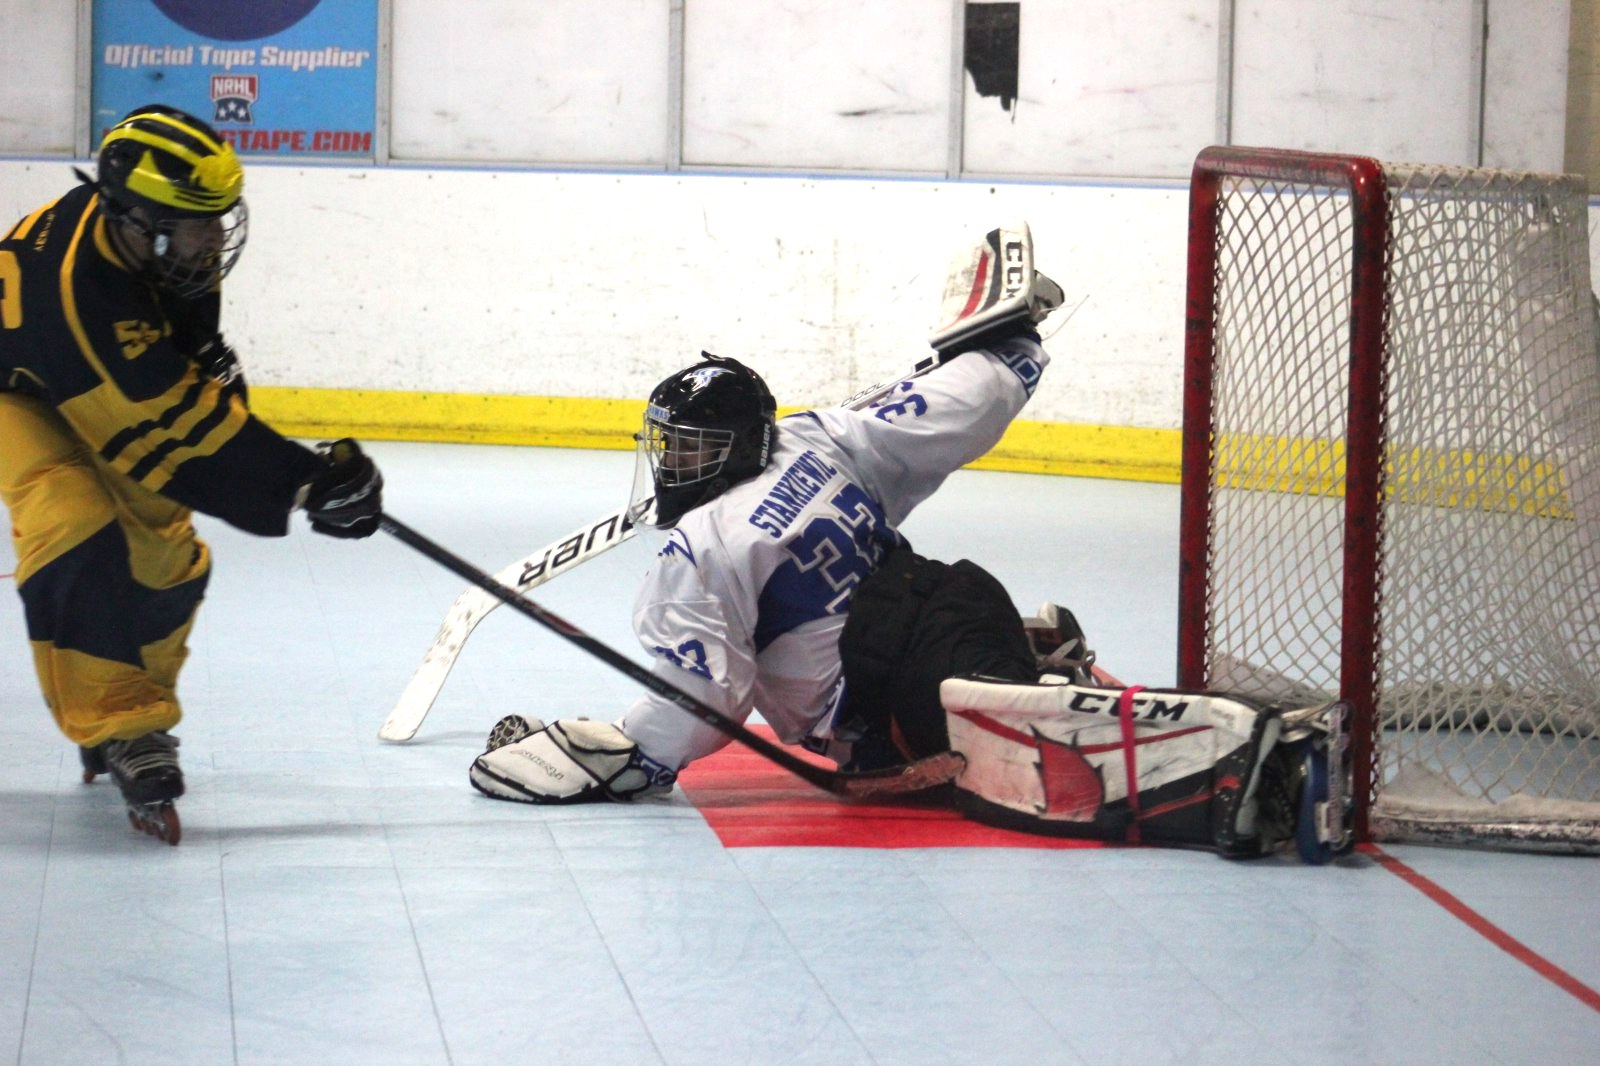 Goalie doing splits to stop goal.